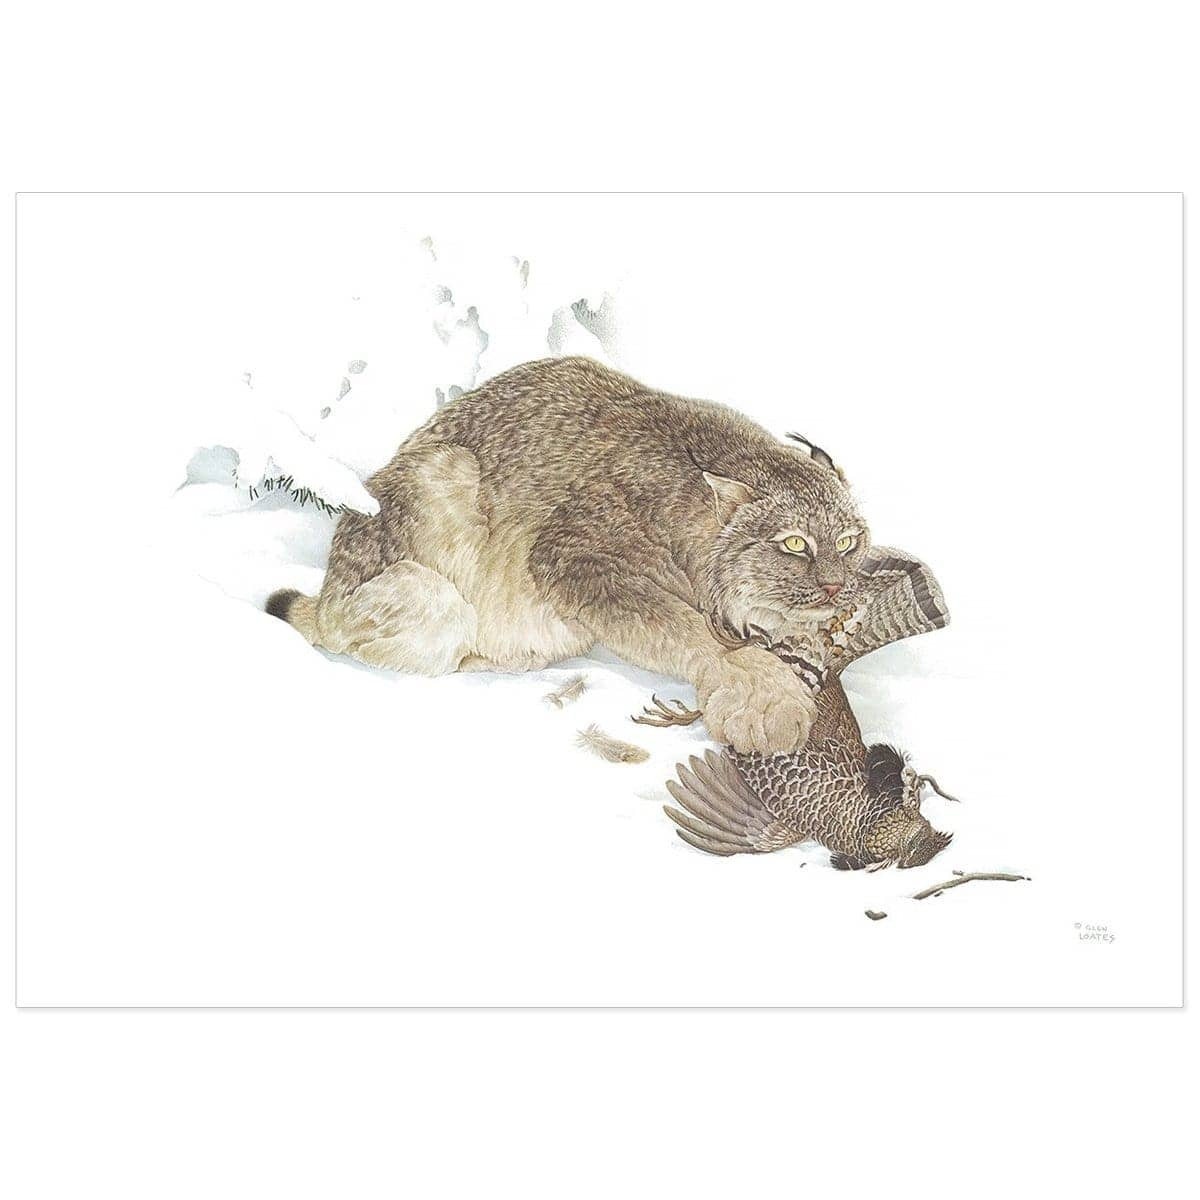 Canada Lynx With Ruffed Grouse - Art Print by Glen Loates from the Glen Loates Store